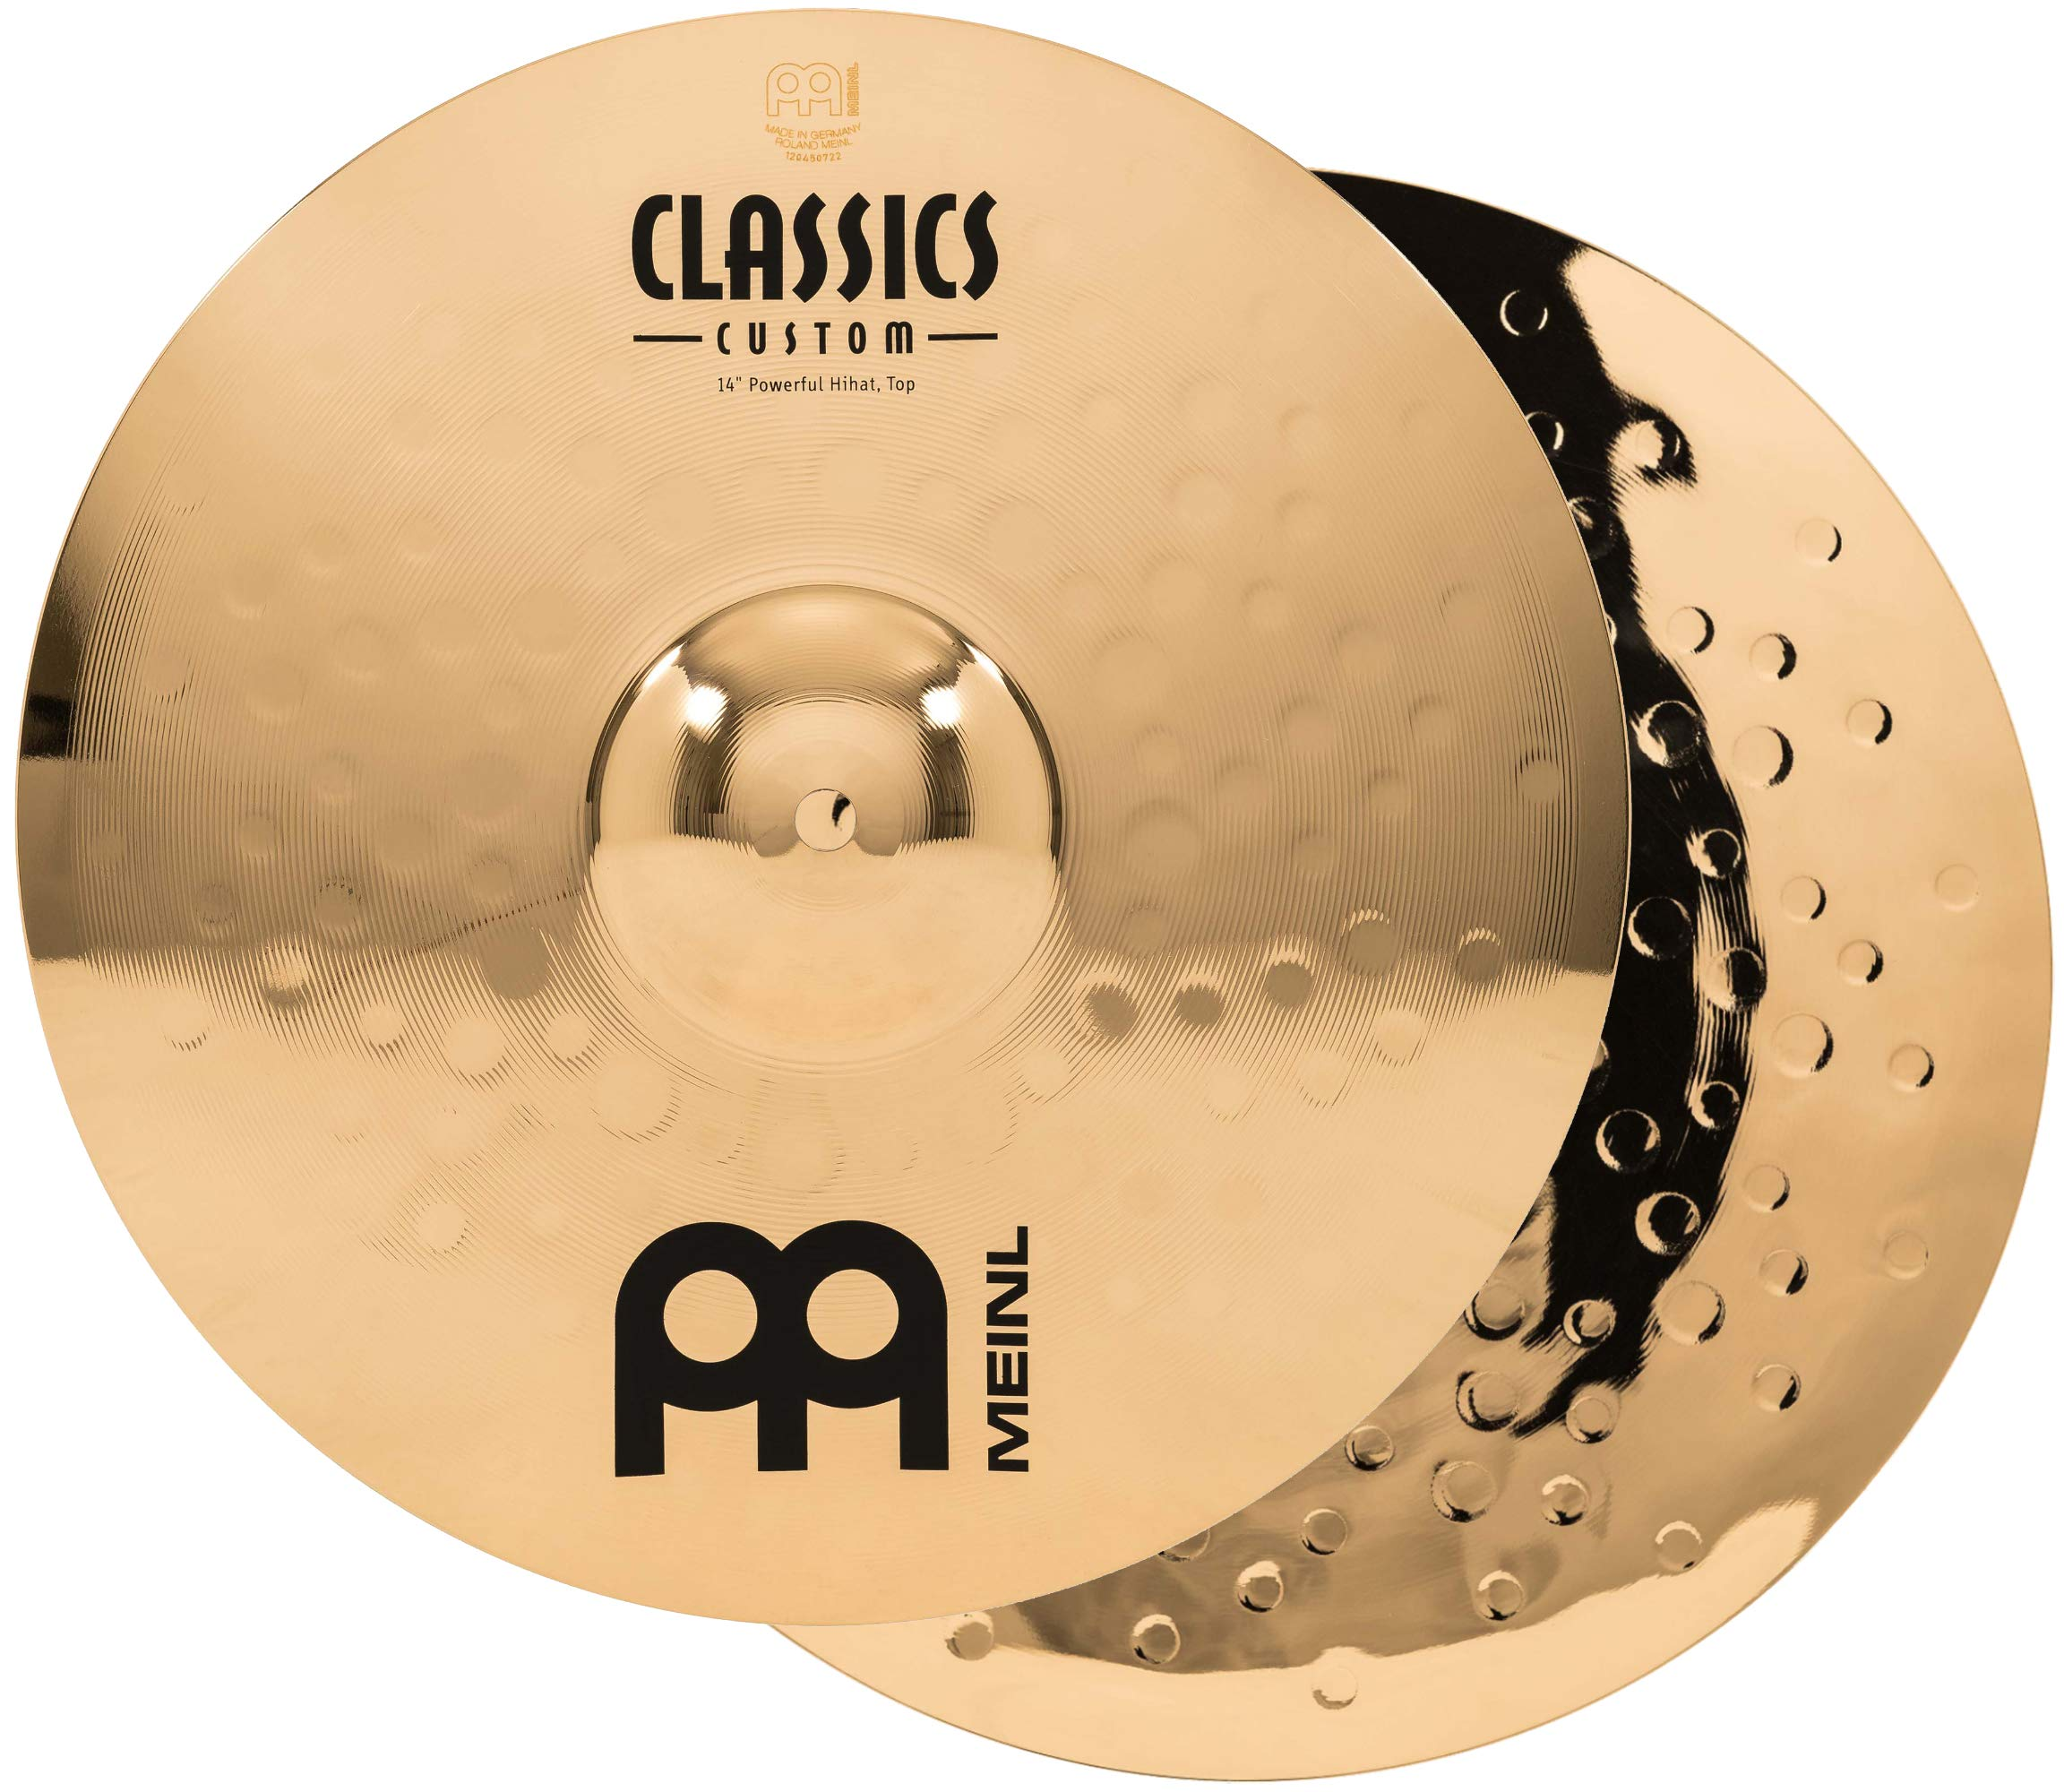 Meinl 14'' Powerful Hihat (Hi Hat) Cymbal Pair  -  Classics Custom Brilliant - Made in Germany, 2-YEAR WARRANTY (CC14PH-B)